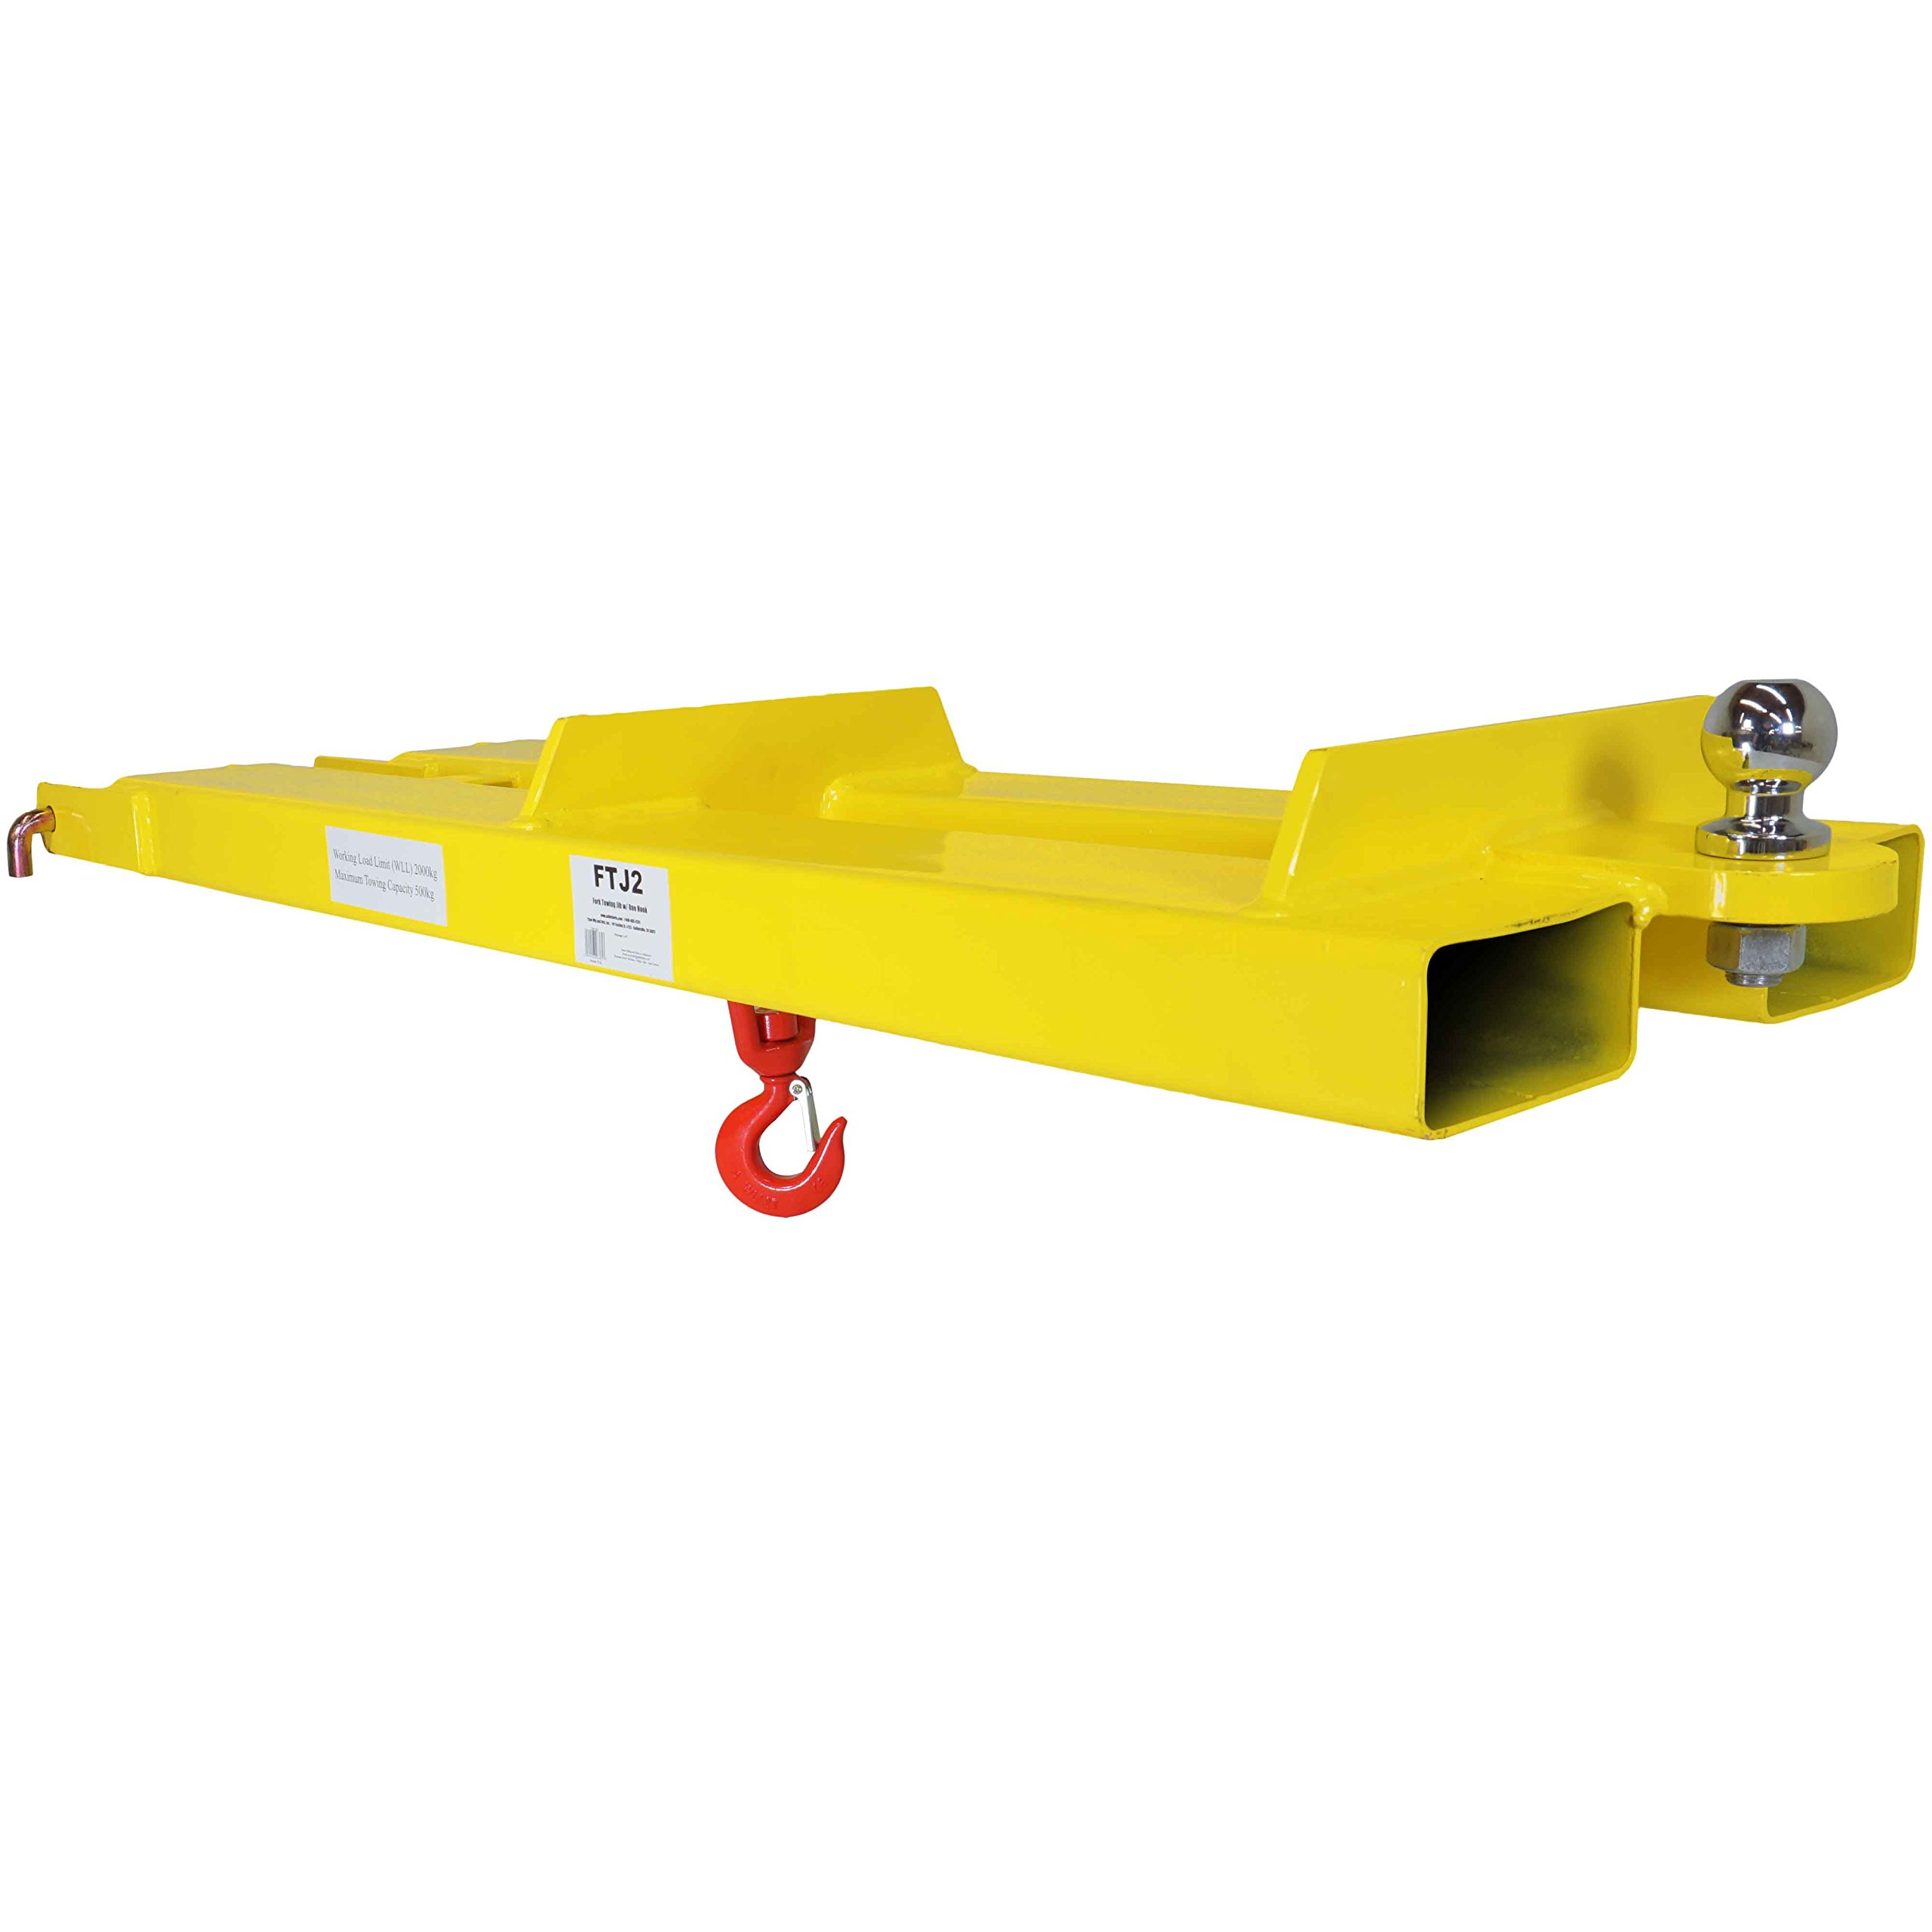 Titan Pallet Fork Forklift Mobile Crane Lifting Hoist Jib Boom Lifting Hook Receiver Ball for Towing by Titan Attachments